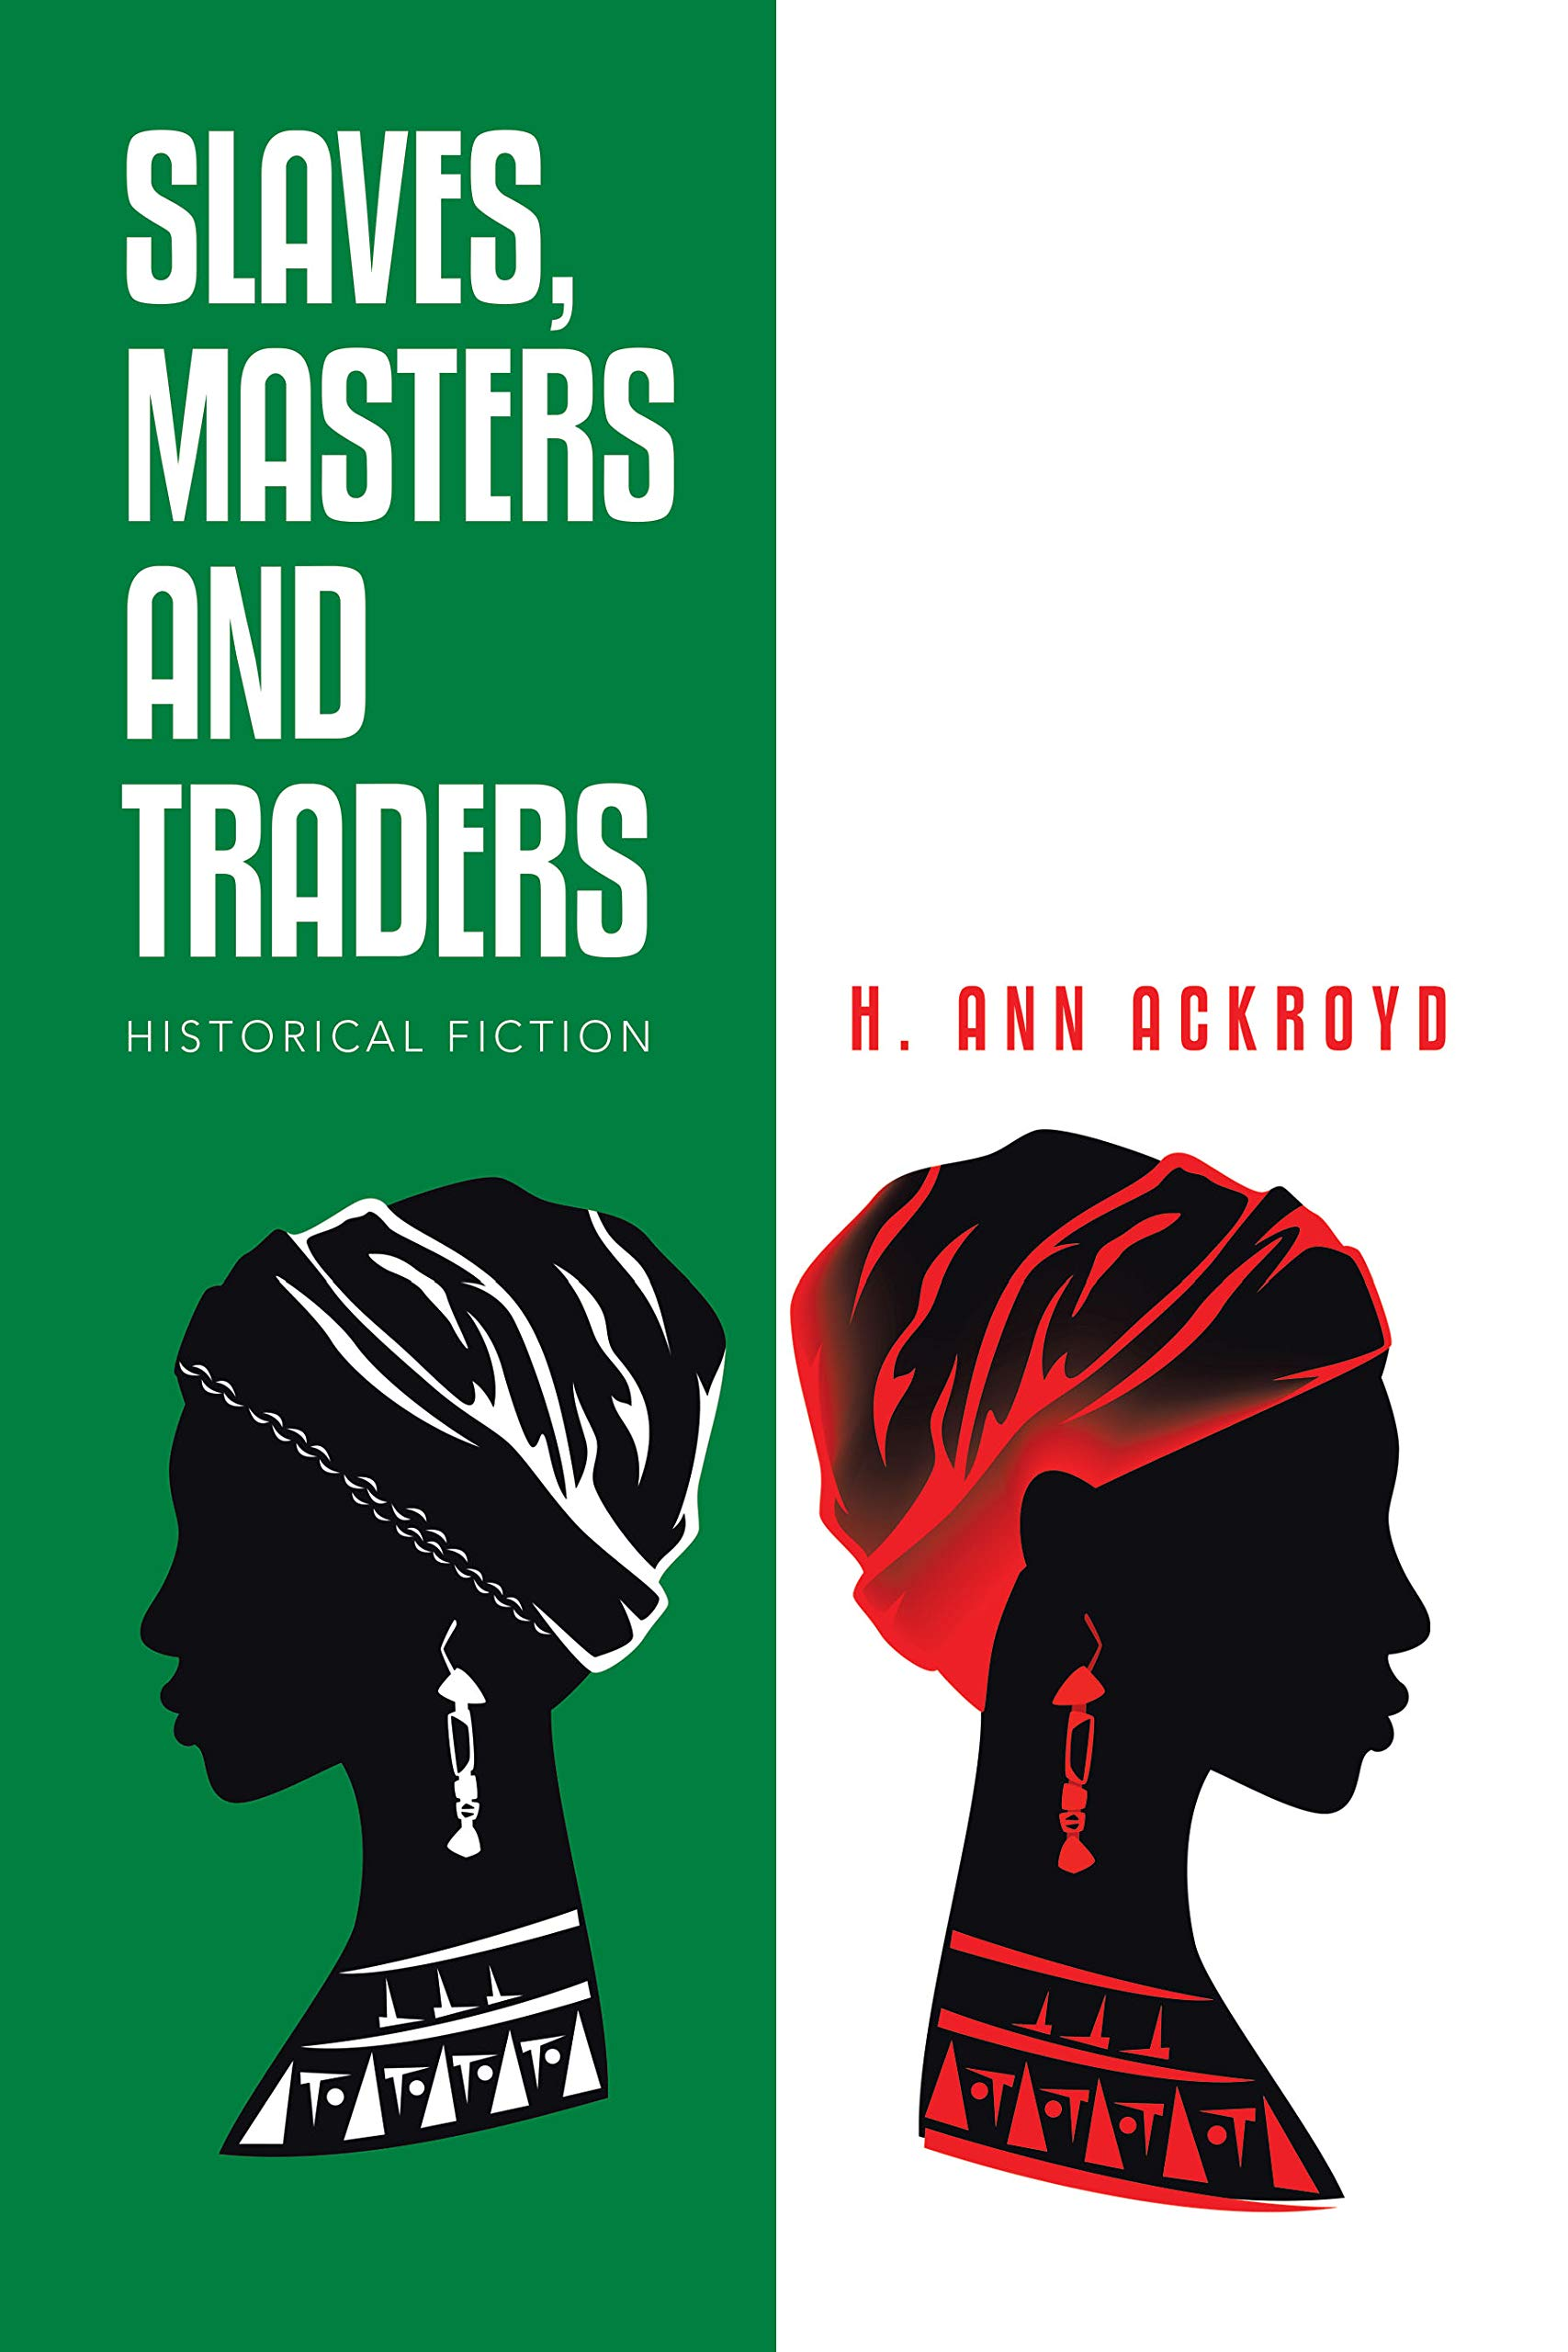 Slaves, Masters and Traders: Historical Fiction